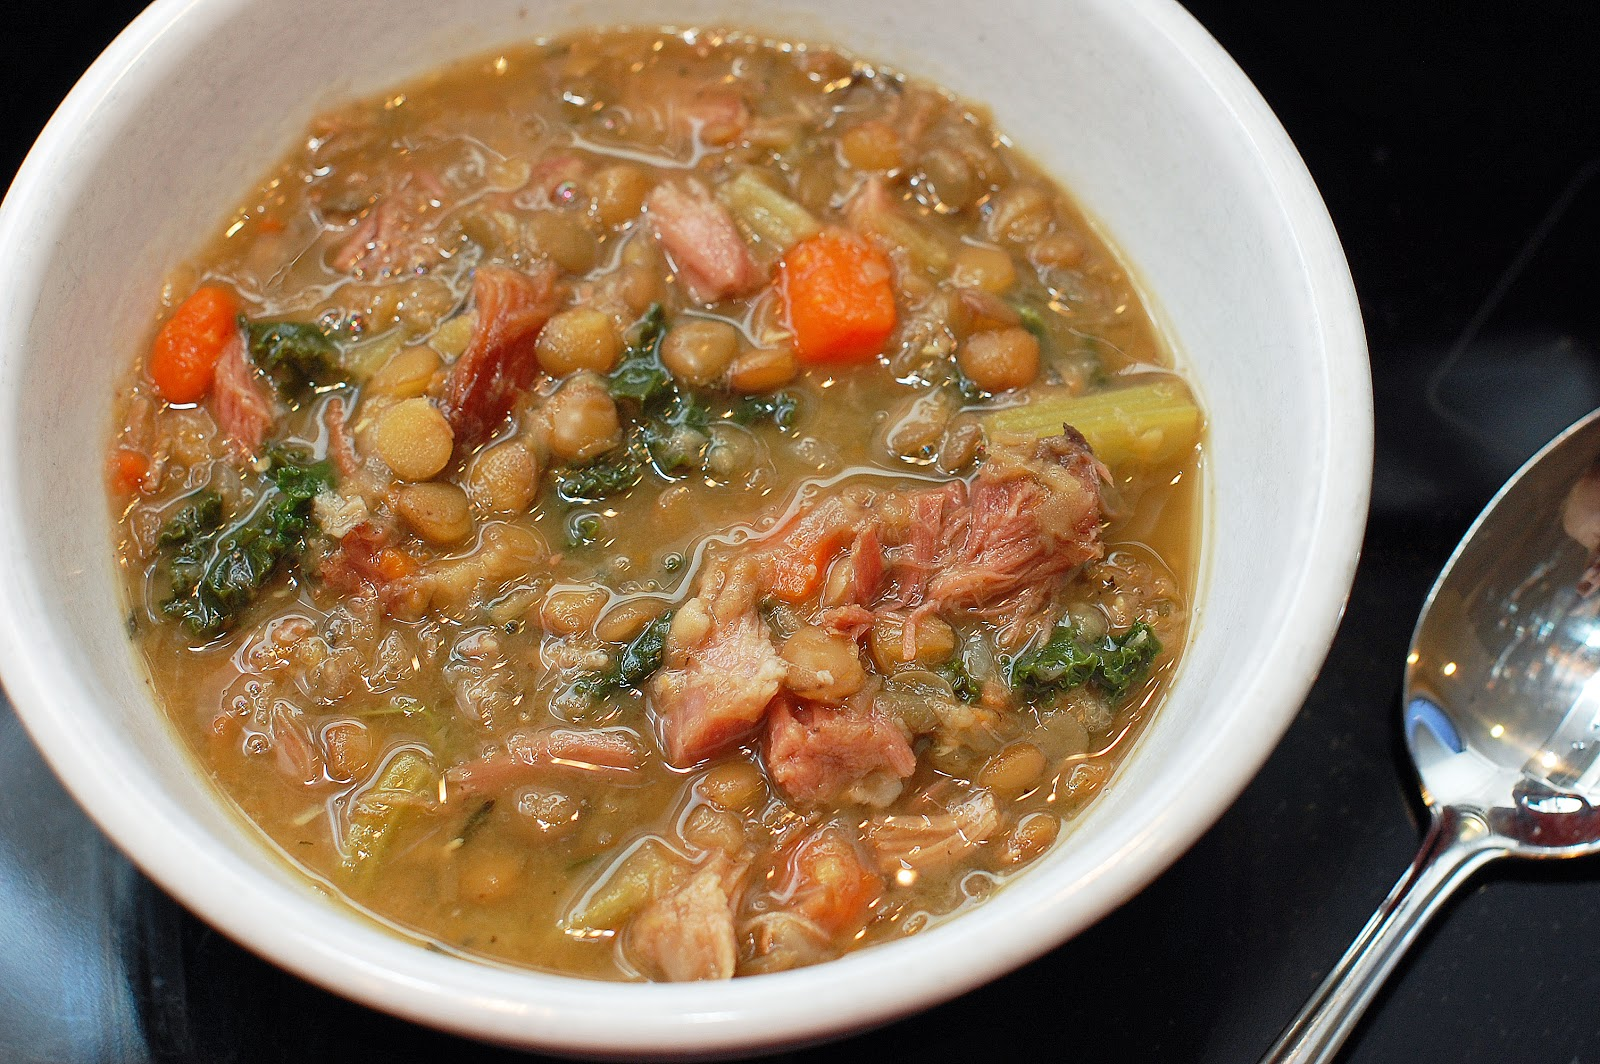 In Michelle's Kitchen: Kale and Lentil Soup with Ham